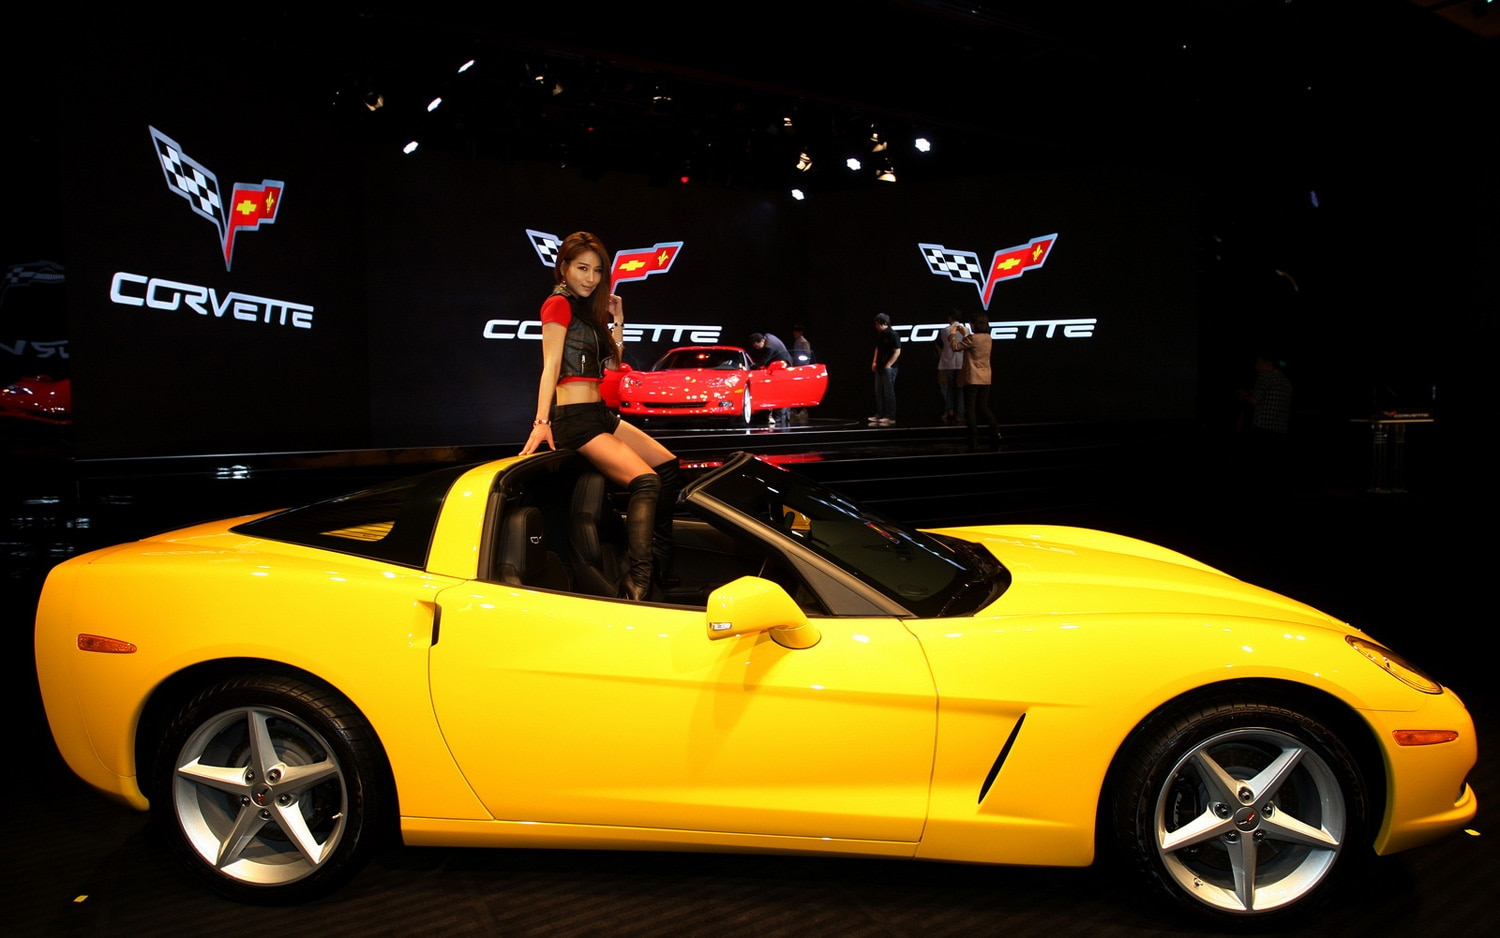 Chevrolet Corvette Launch In Korea Profile1